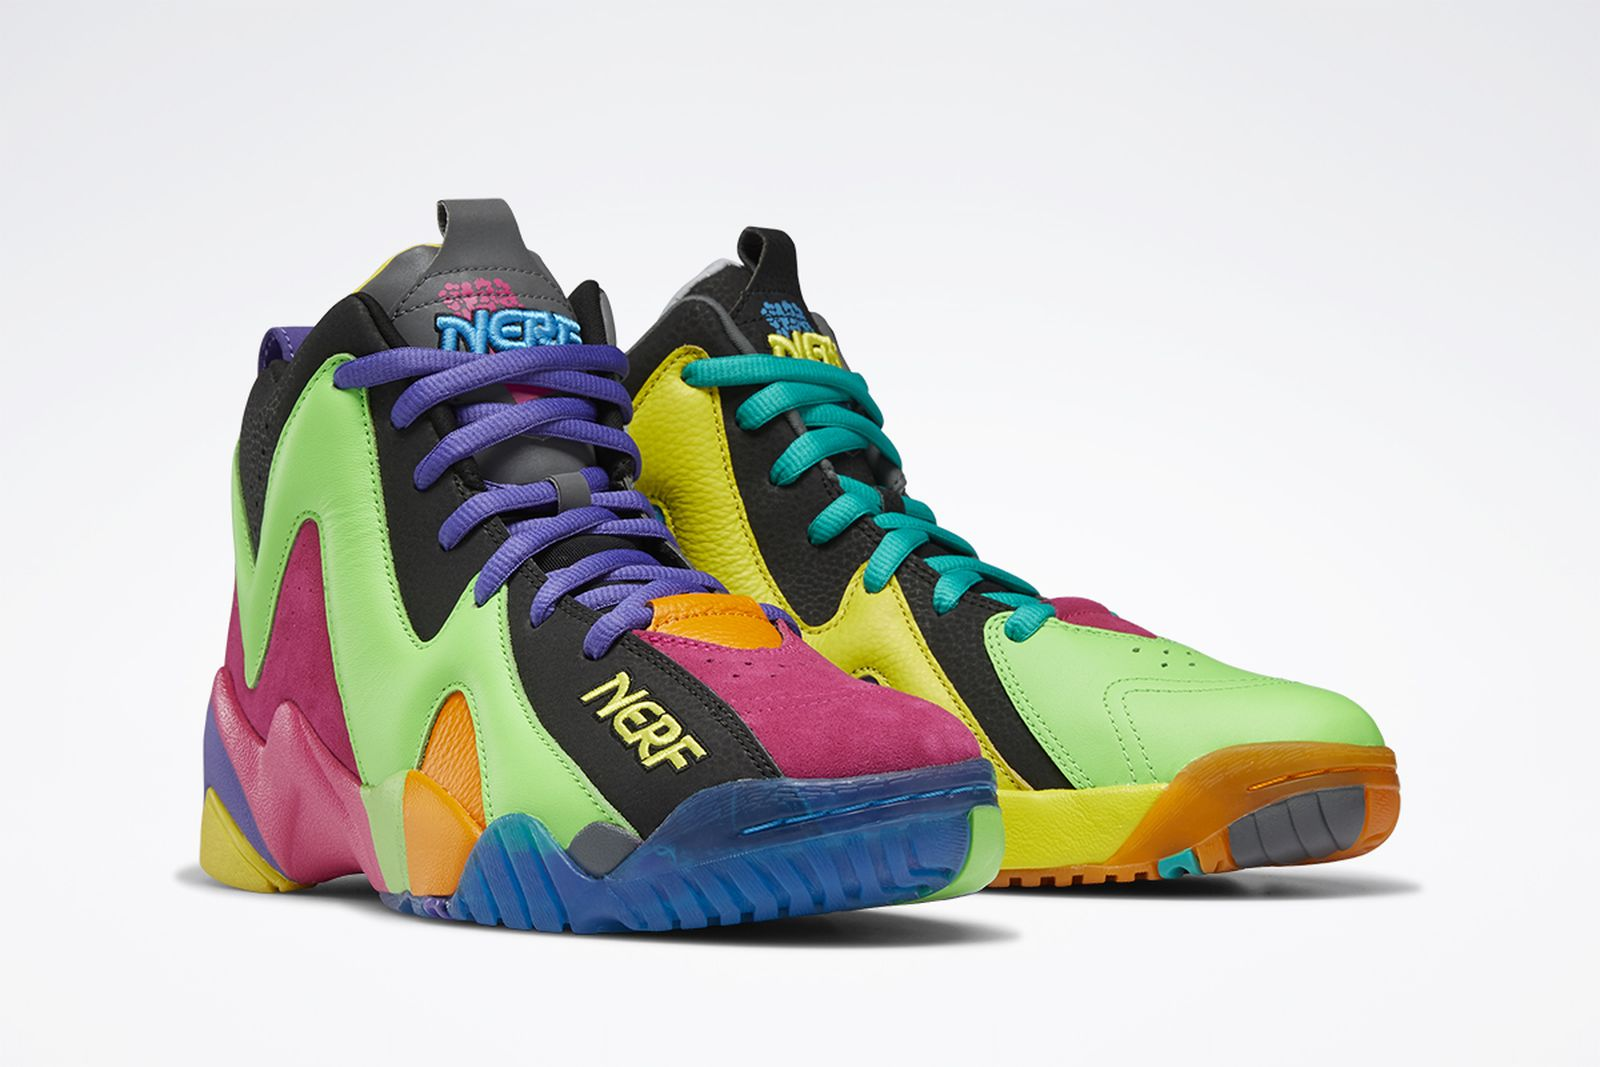 nerf-reebok-retro-basketball-collection-release-date-price-03